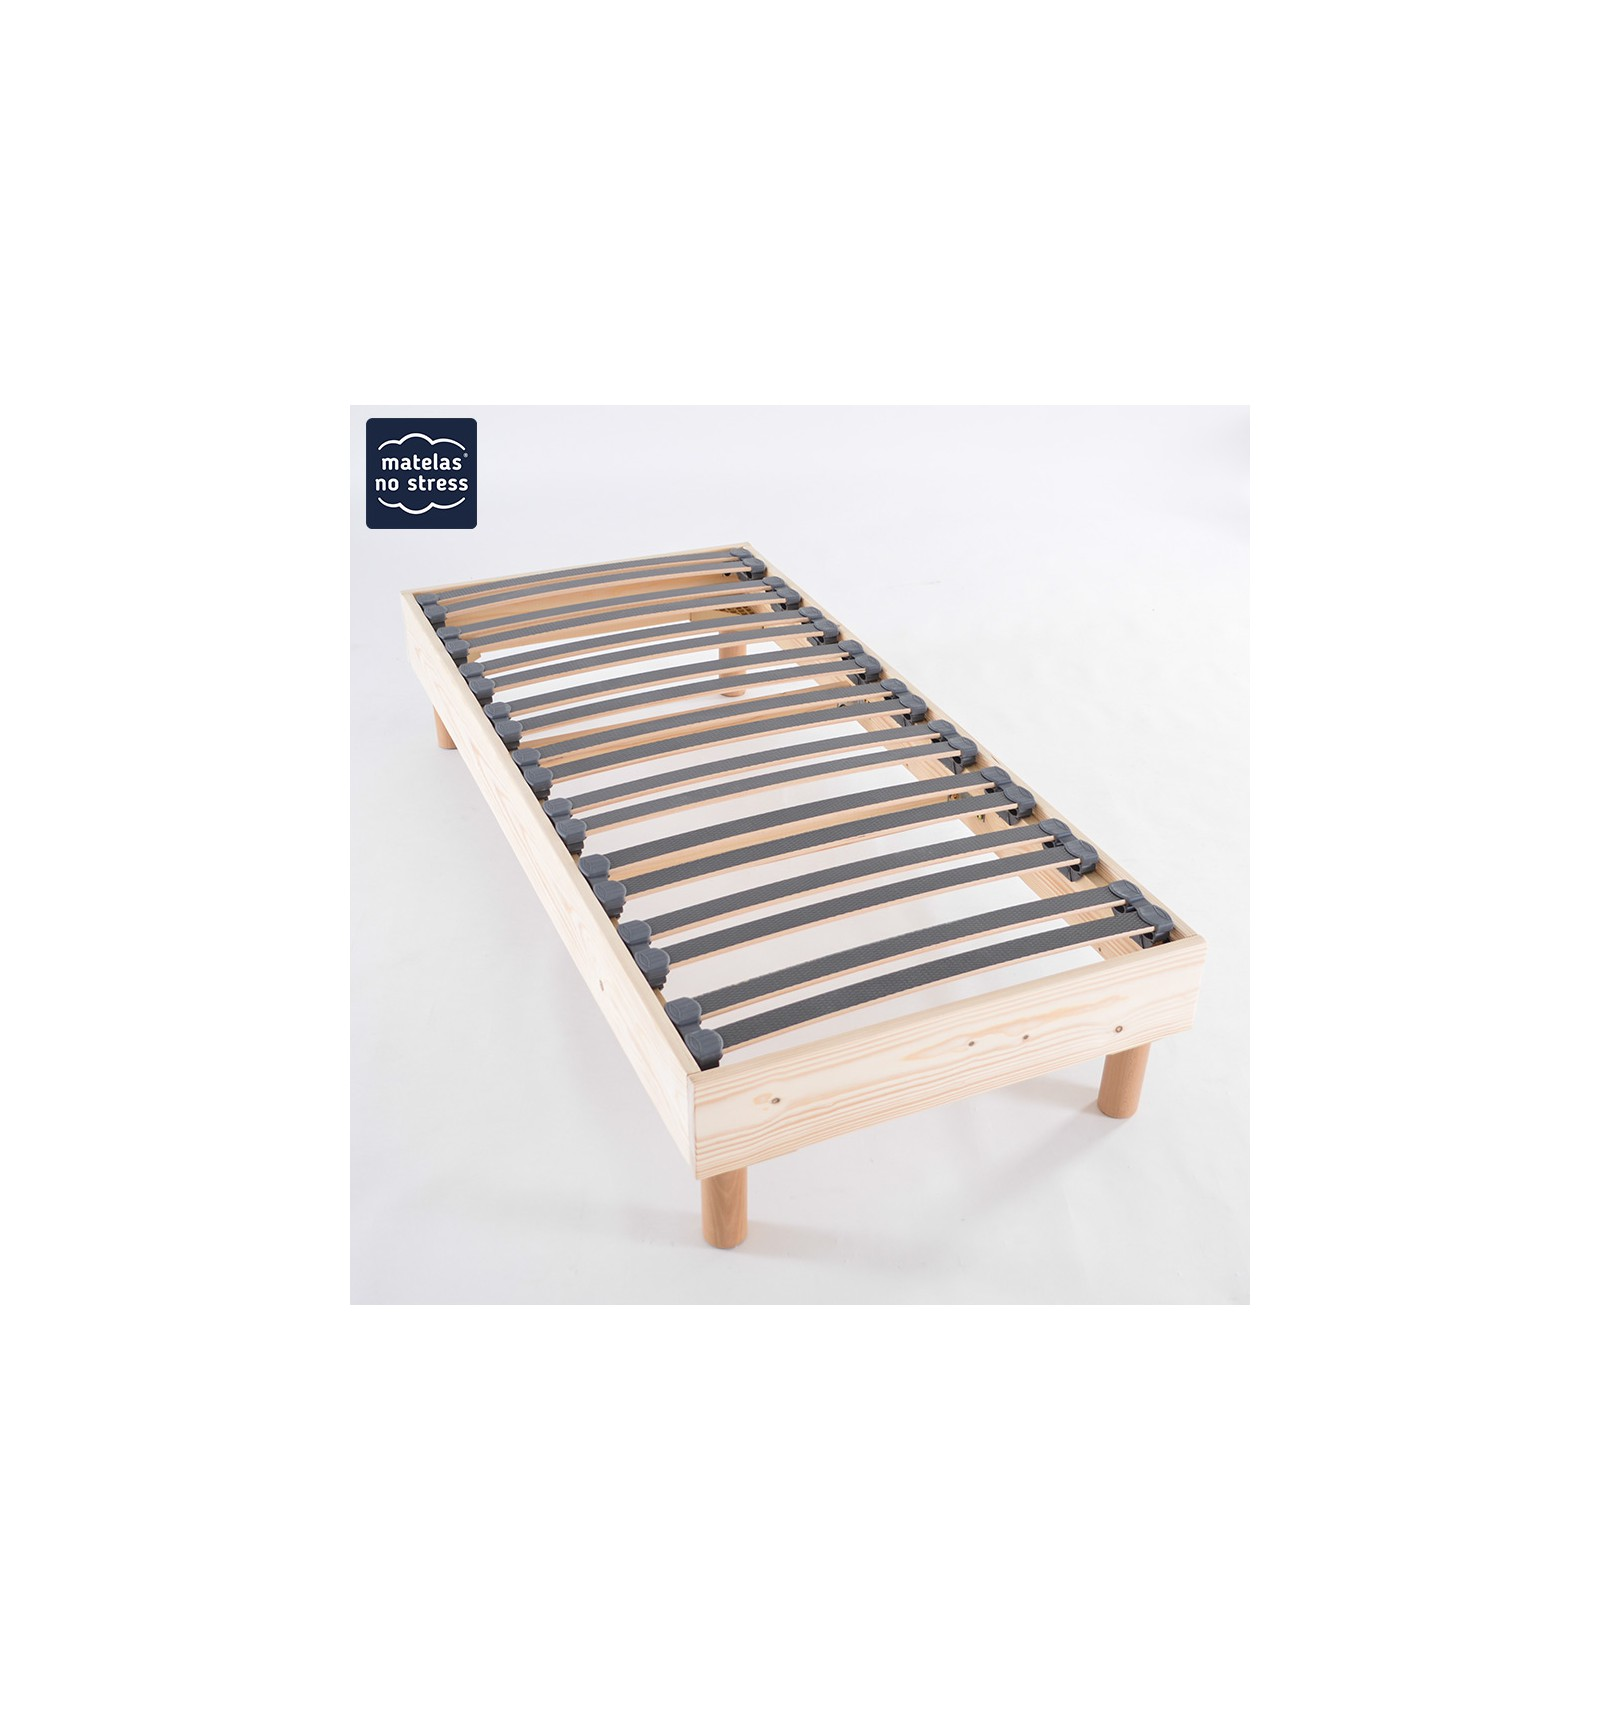 sommier bois naturel 70x160 couffin matelas. Black Bedroom Furniture Sets. Home Design Ideas